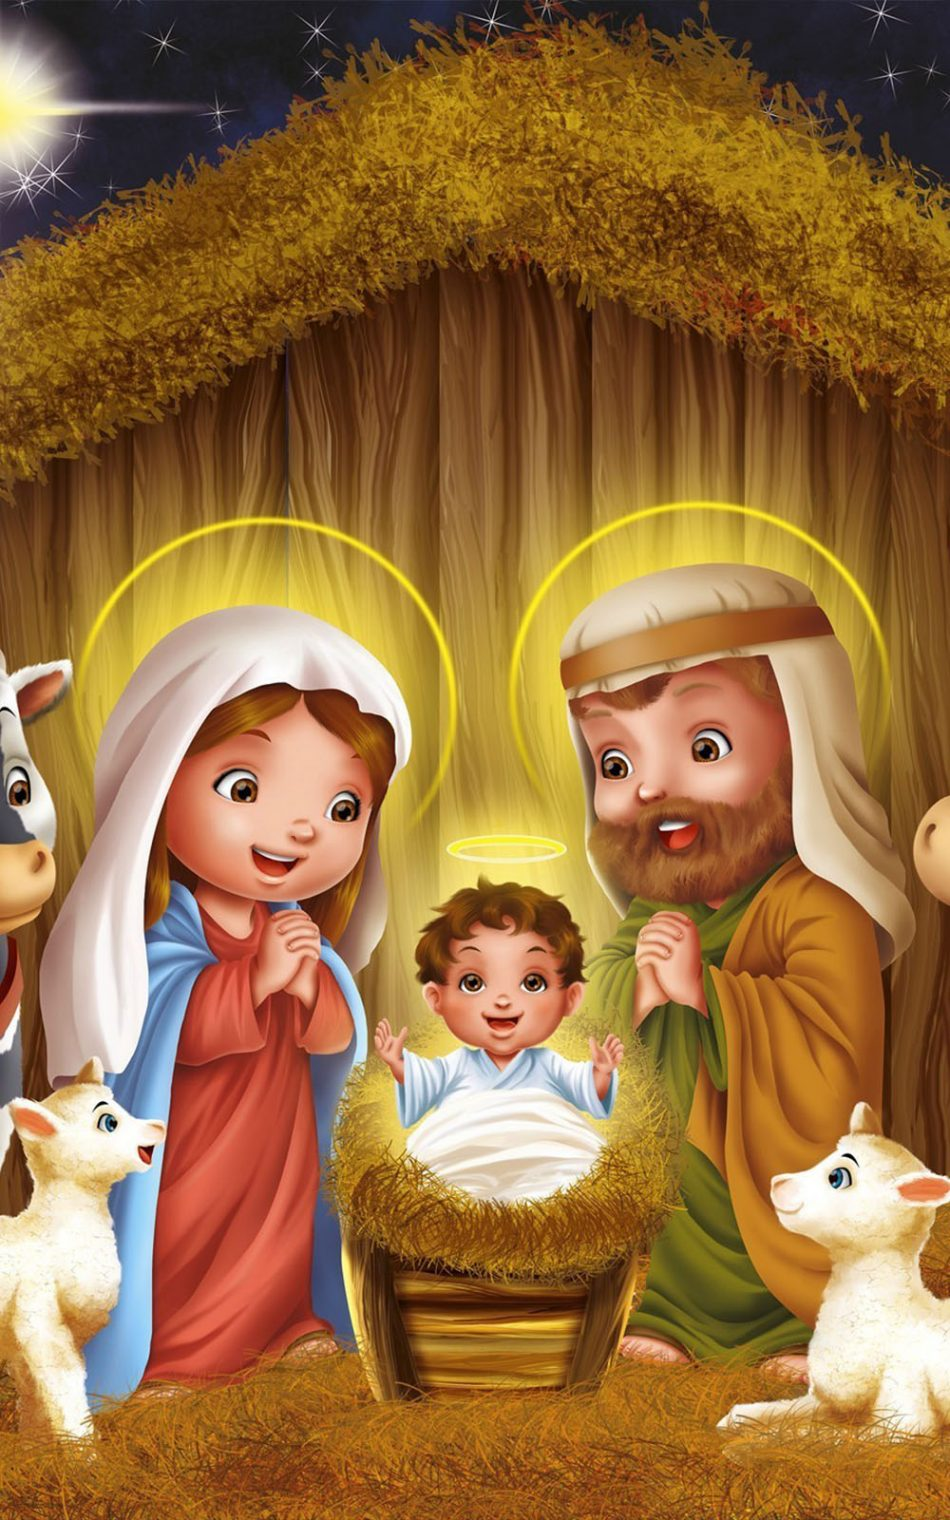 Cute Lock Screen Wallpaper Hd Download Christmas Jesus Born Artwork Free Pure 4k Ultra